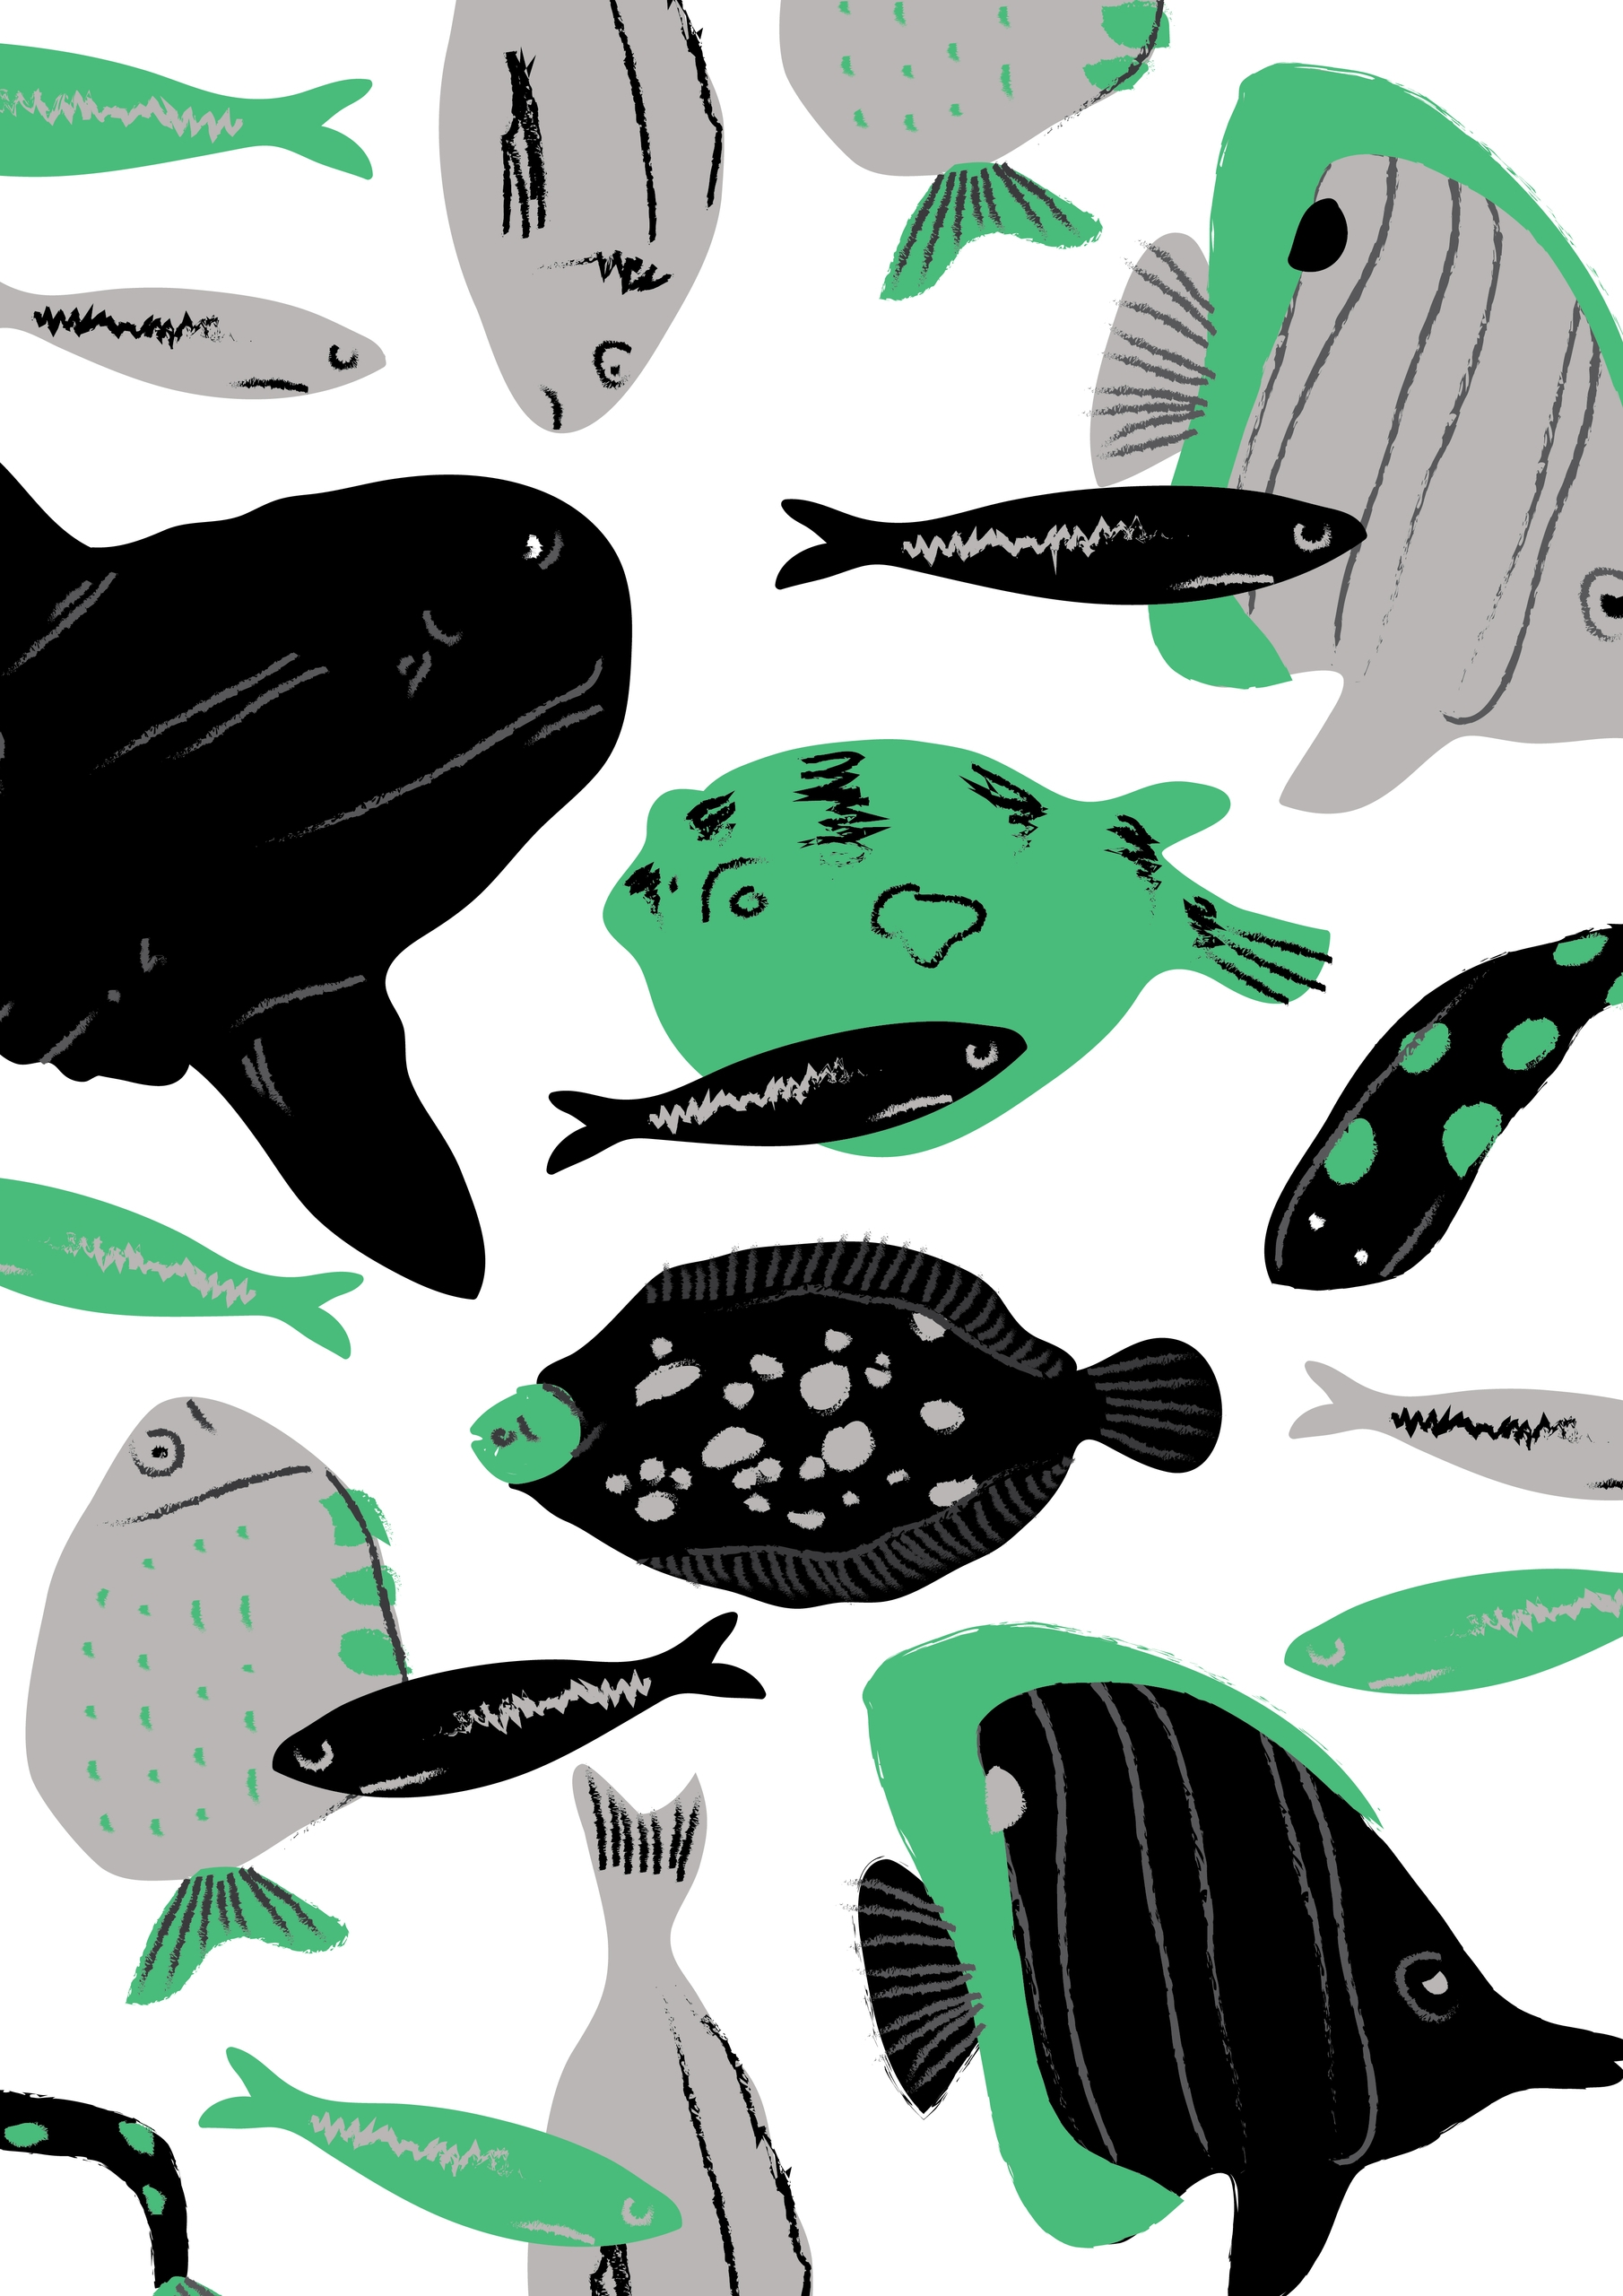 fish, beatrizalao, illustration - beatrizalao | ello